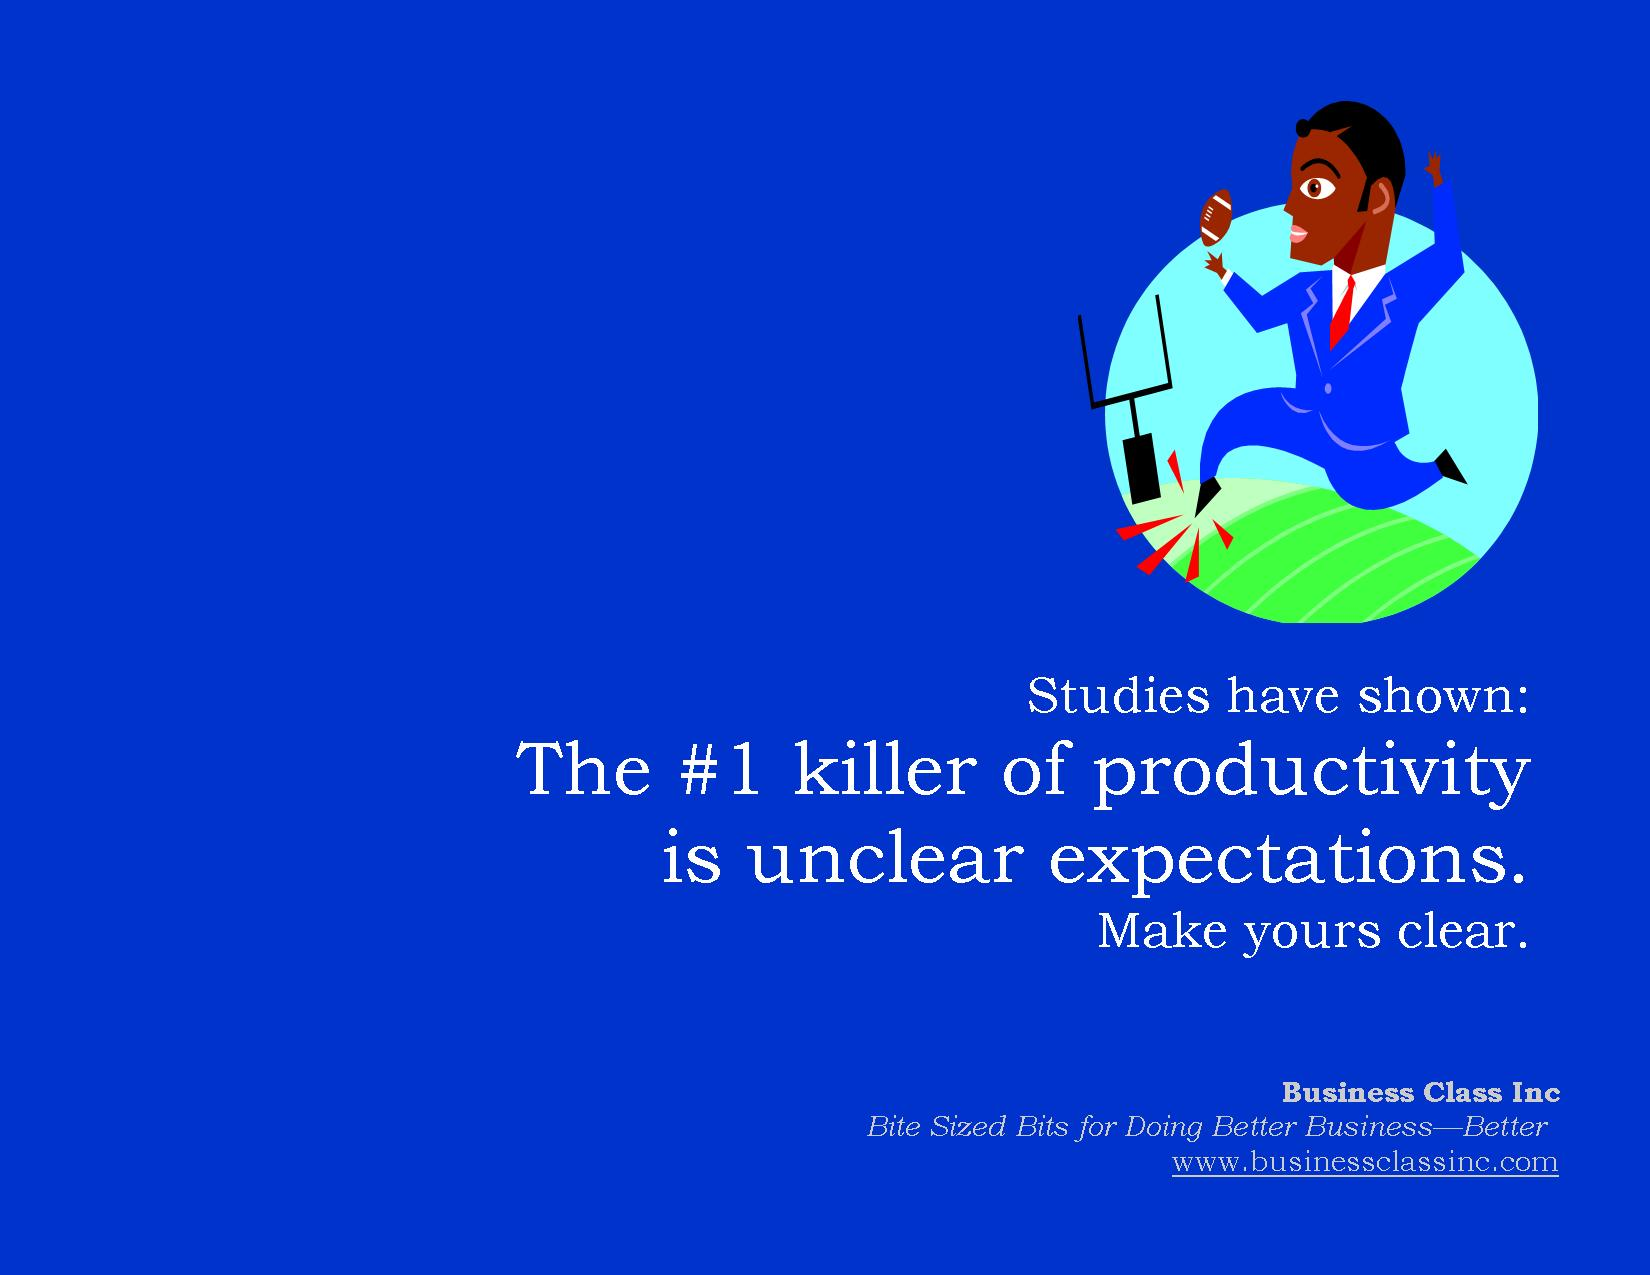 The #1 killer of productivity is unclear expectations.  Make your clear.